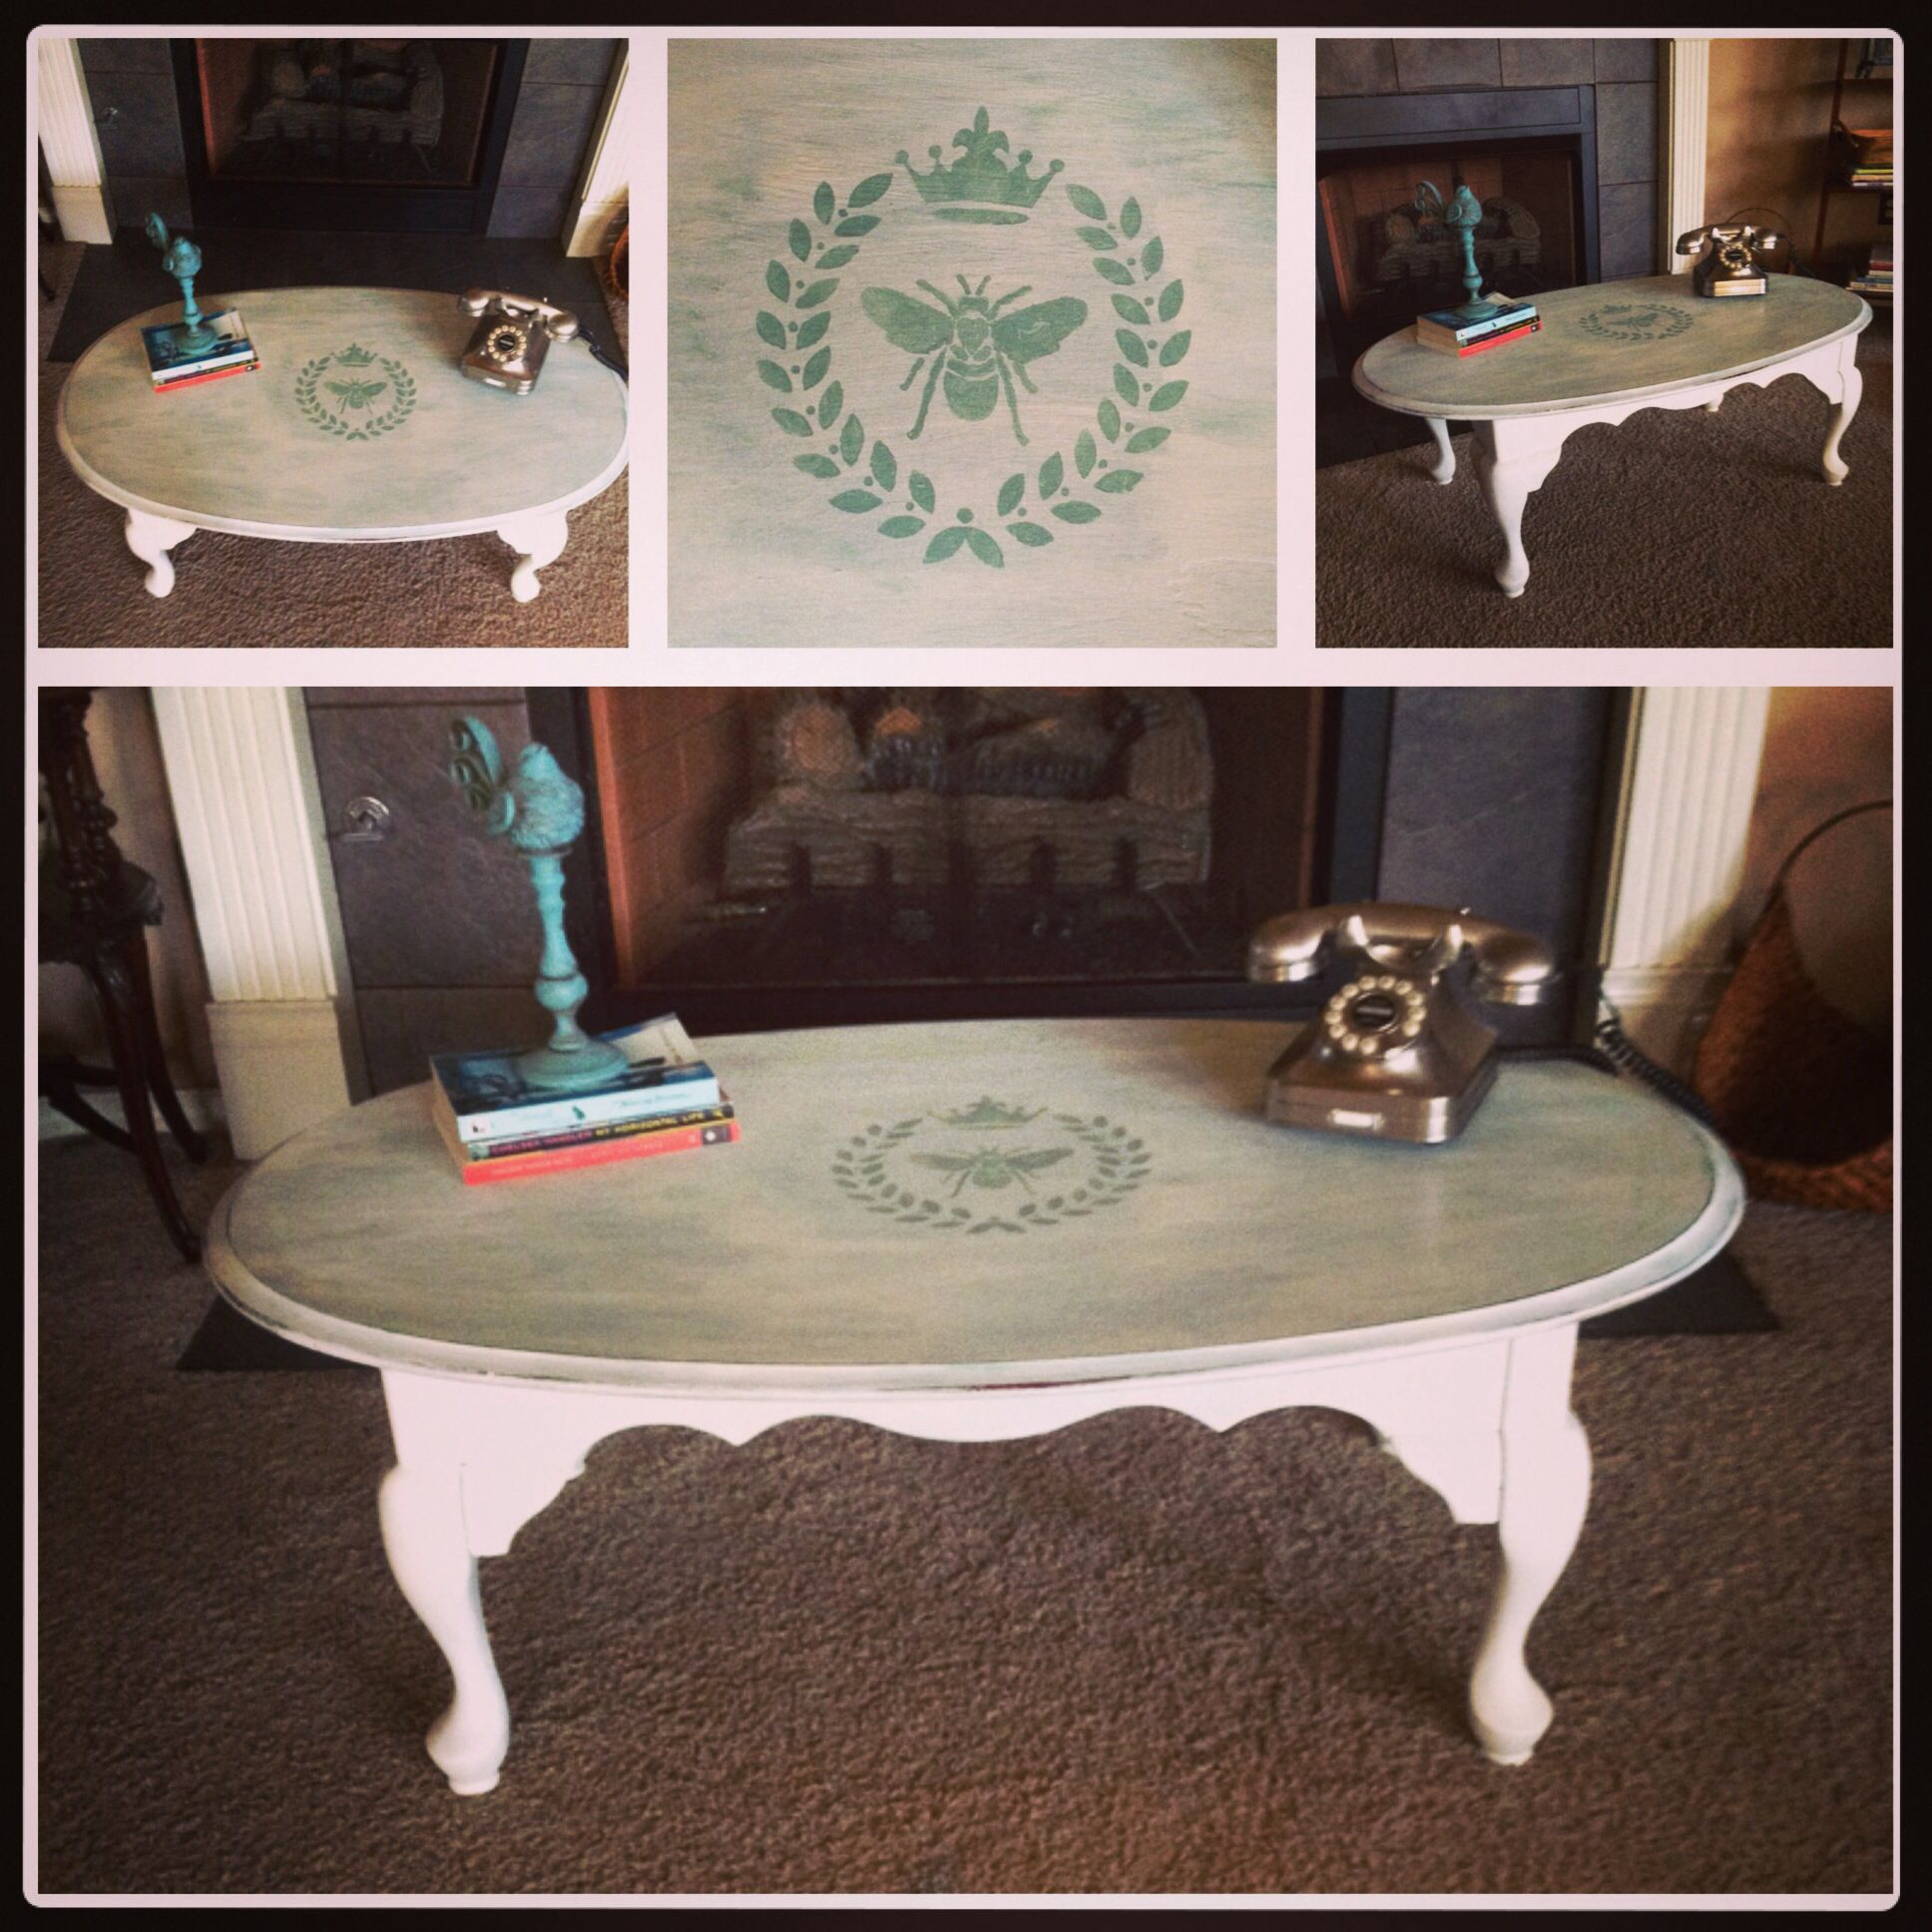 Queen anne style coffee table painted distressed and stenciled queen anne style coffee table painted distressed and stenciled geotapseo Choice Image